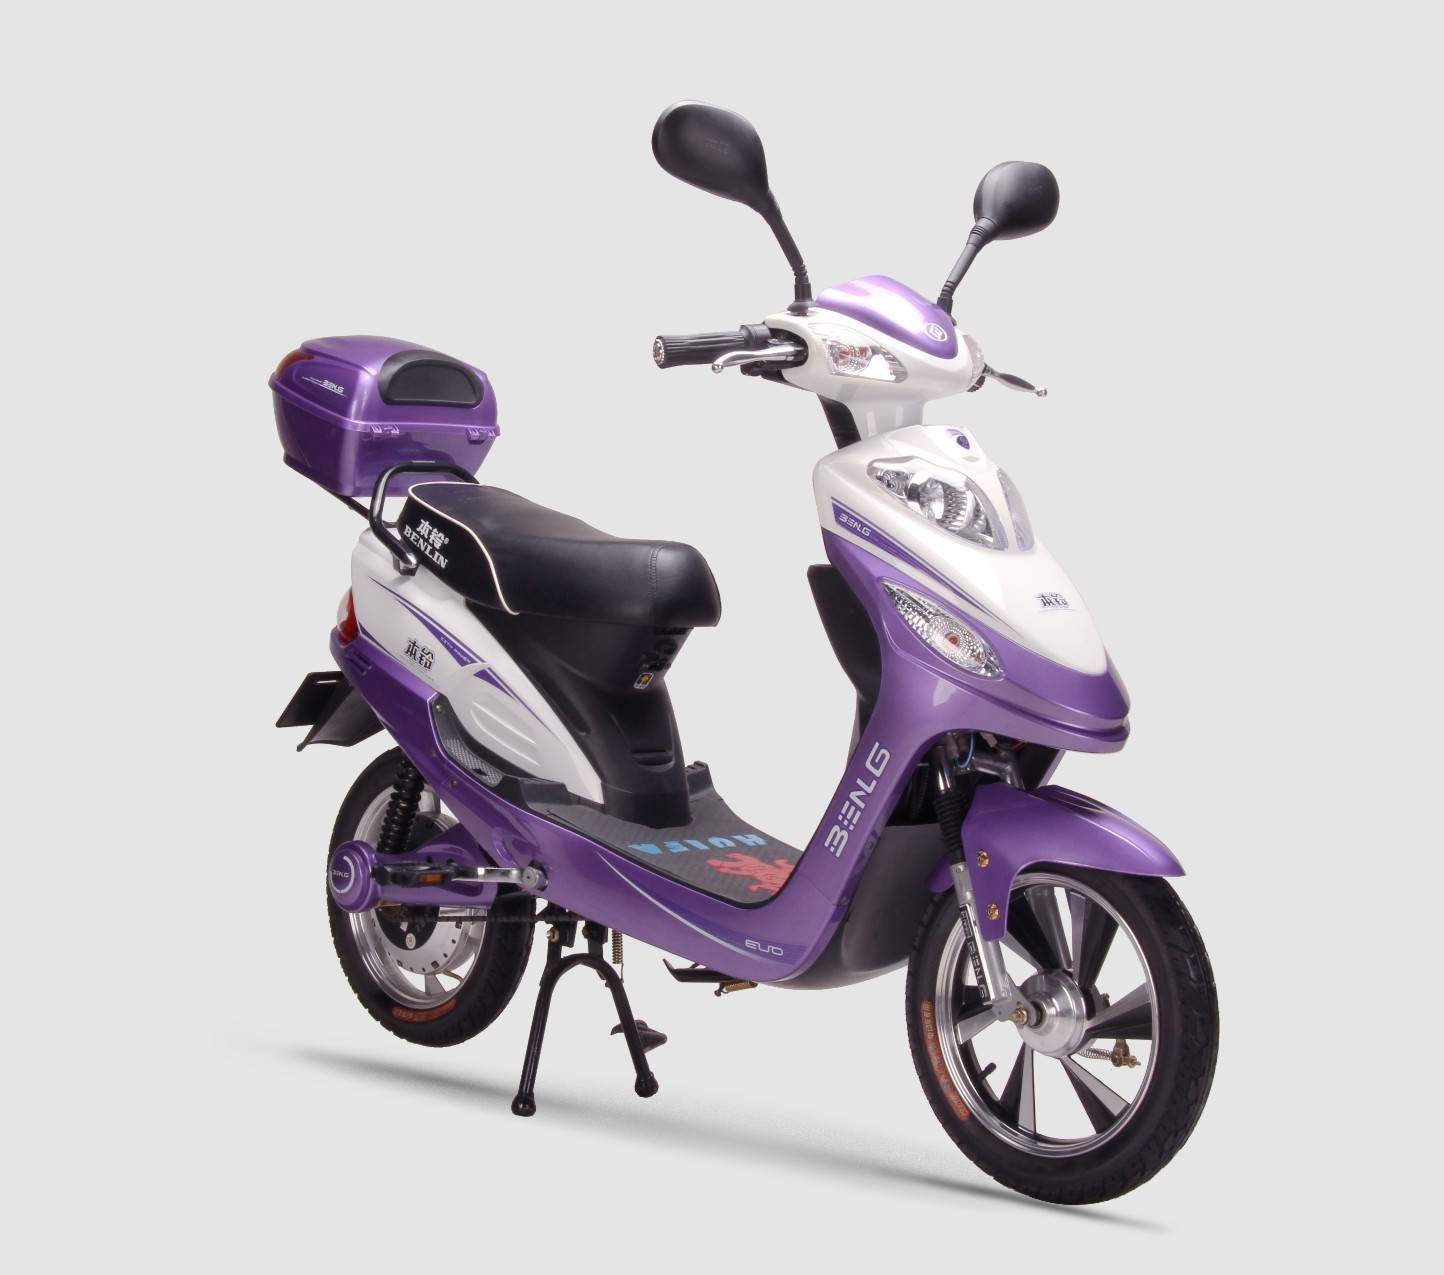 350W ECO bike e-scooter electric scooter with competitive price Iraq Iran Qatar Mauritius Madagascar